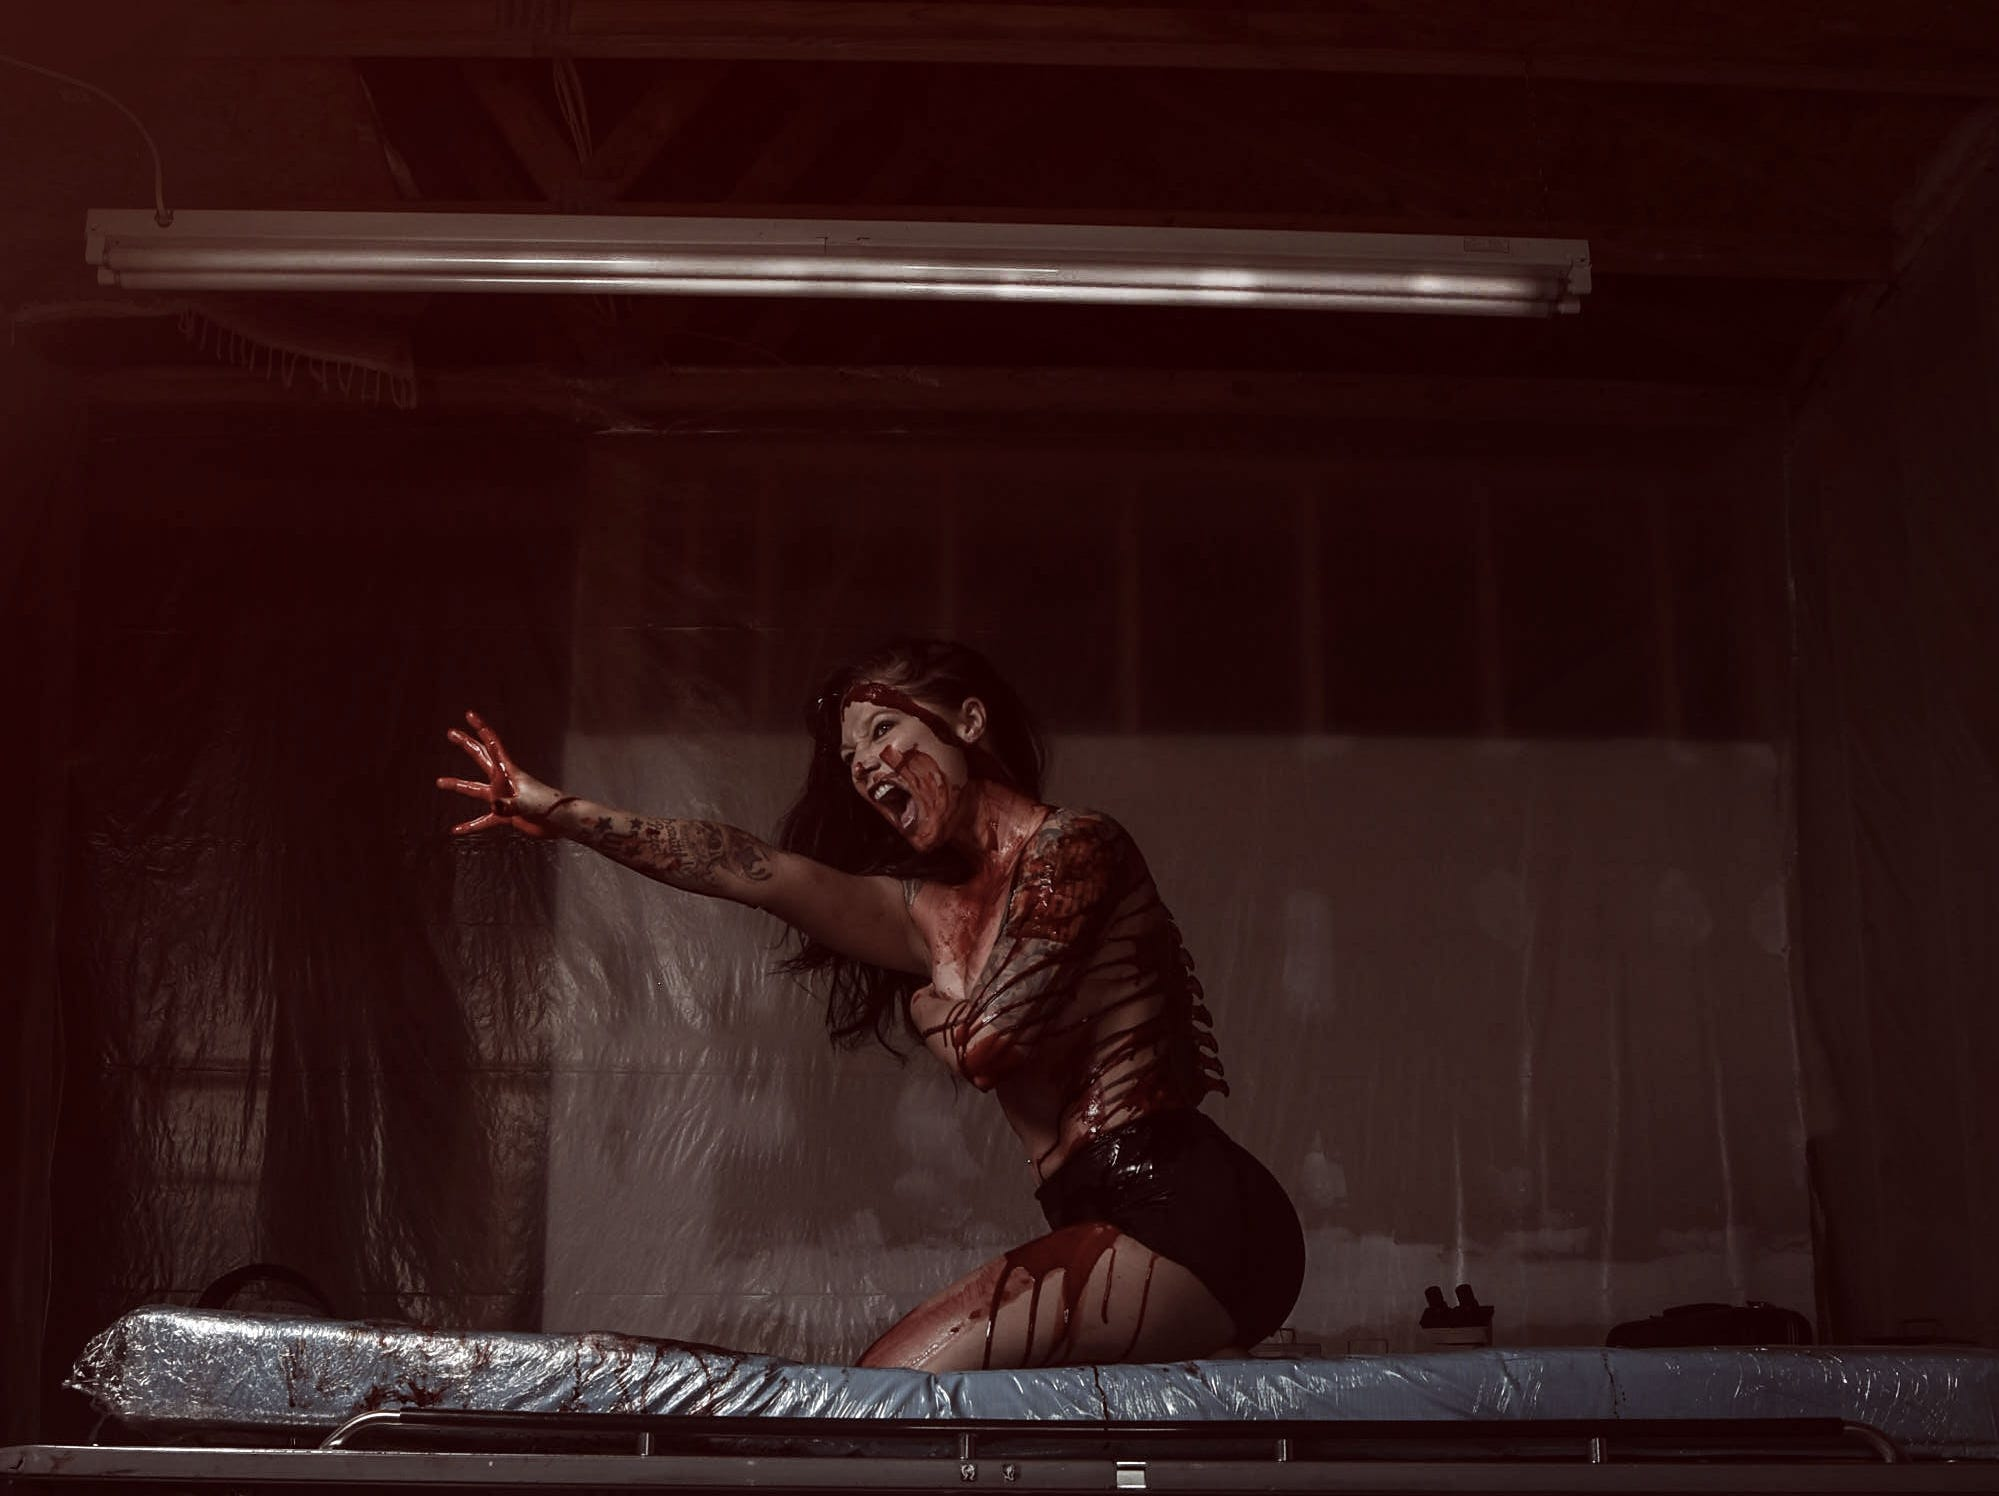 Leighann Word portrays a victim in this horror-themed photo session by Mallory Bertrand. Special effects are by Ash Mac.